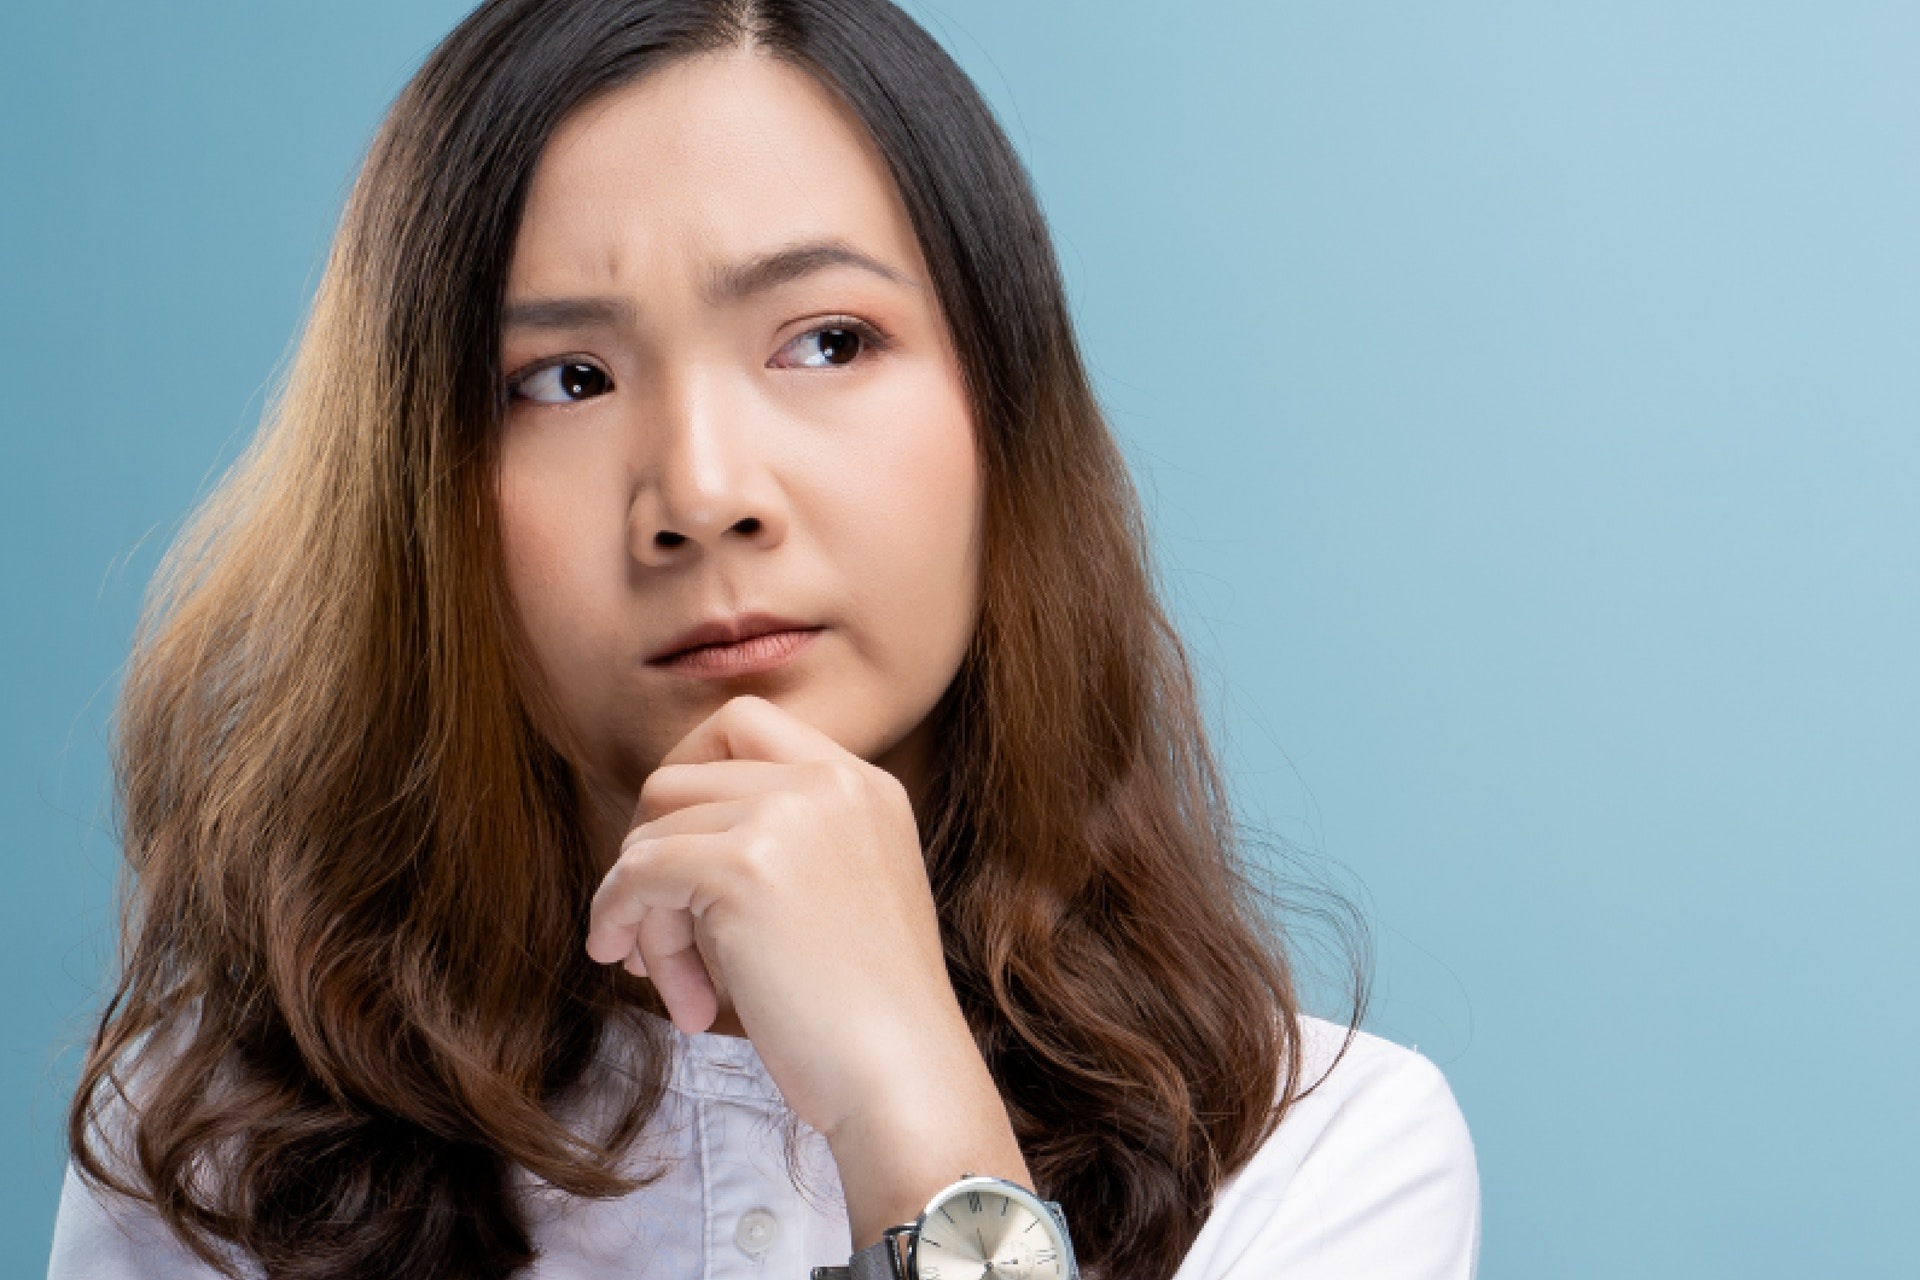 Young asian woman with her hand under her chin, listening, thinking, with a blue background.